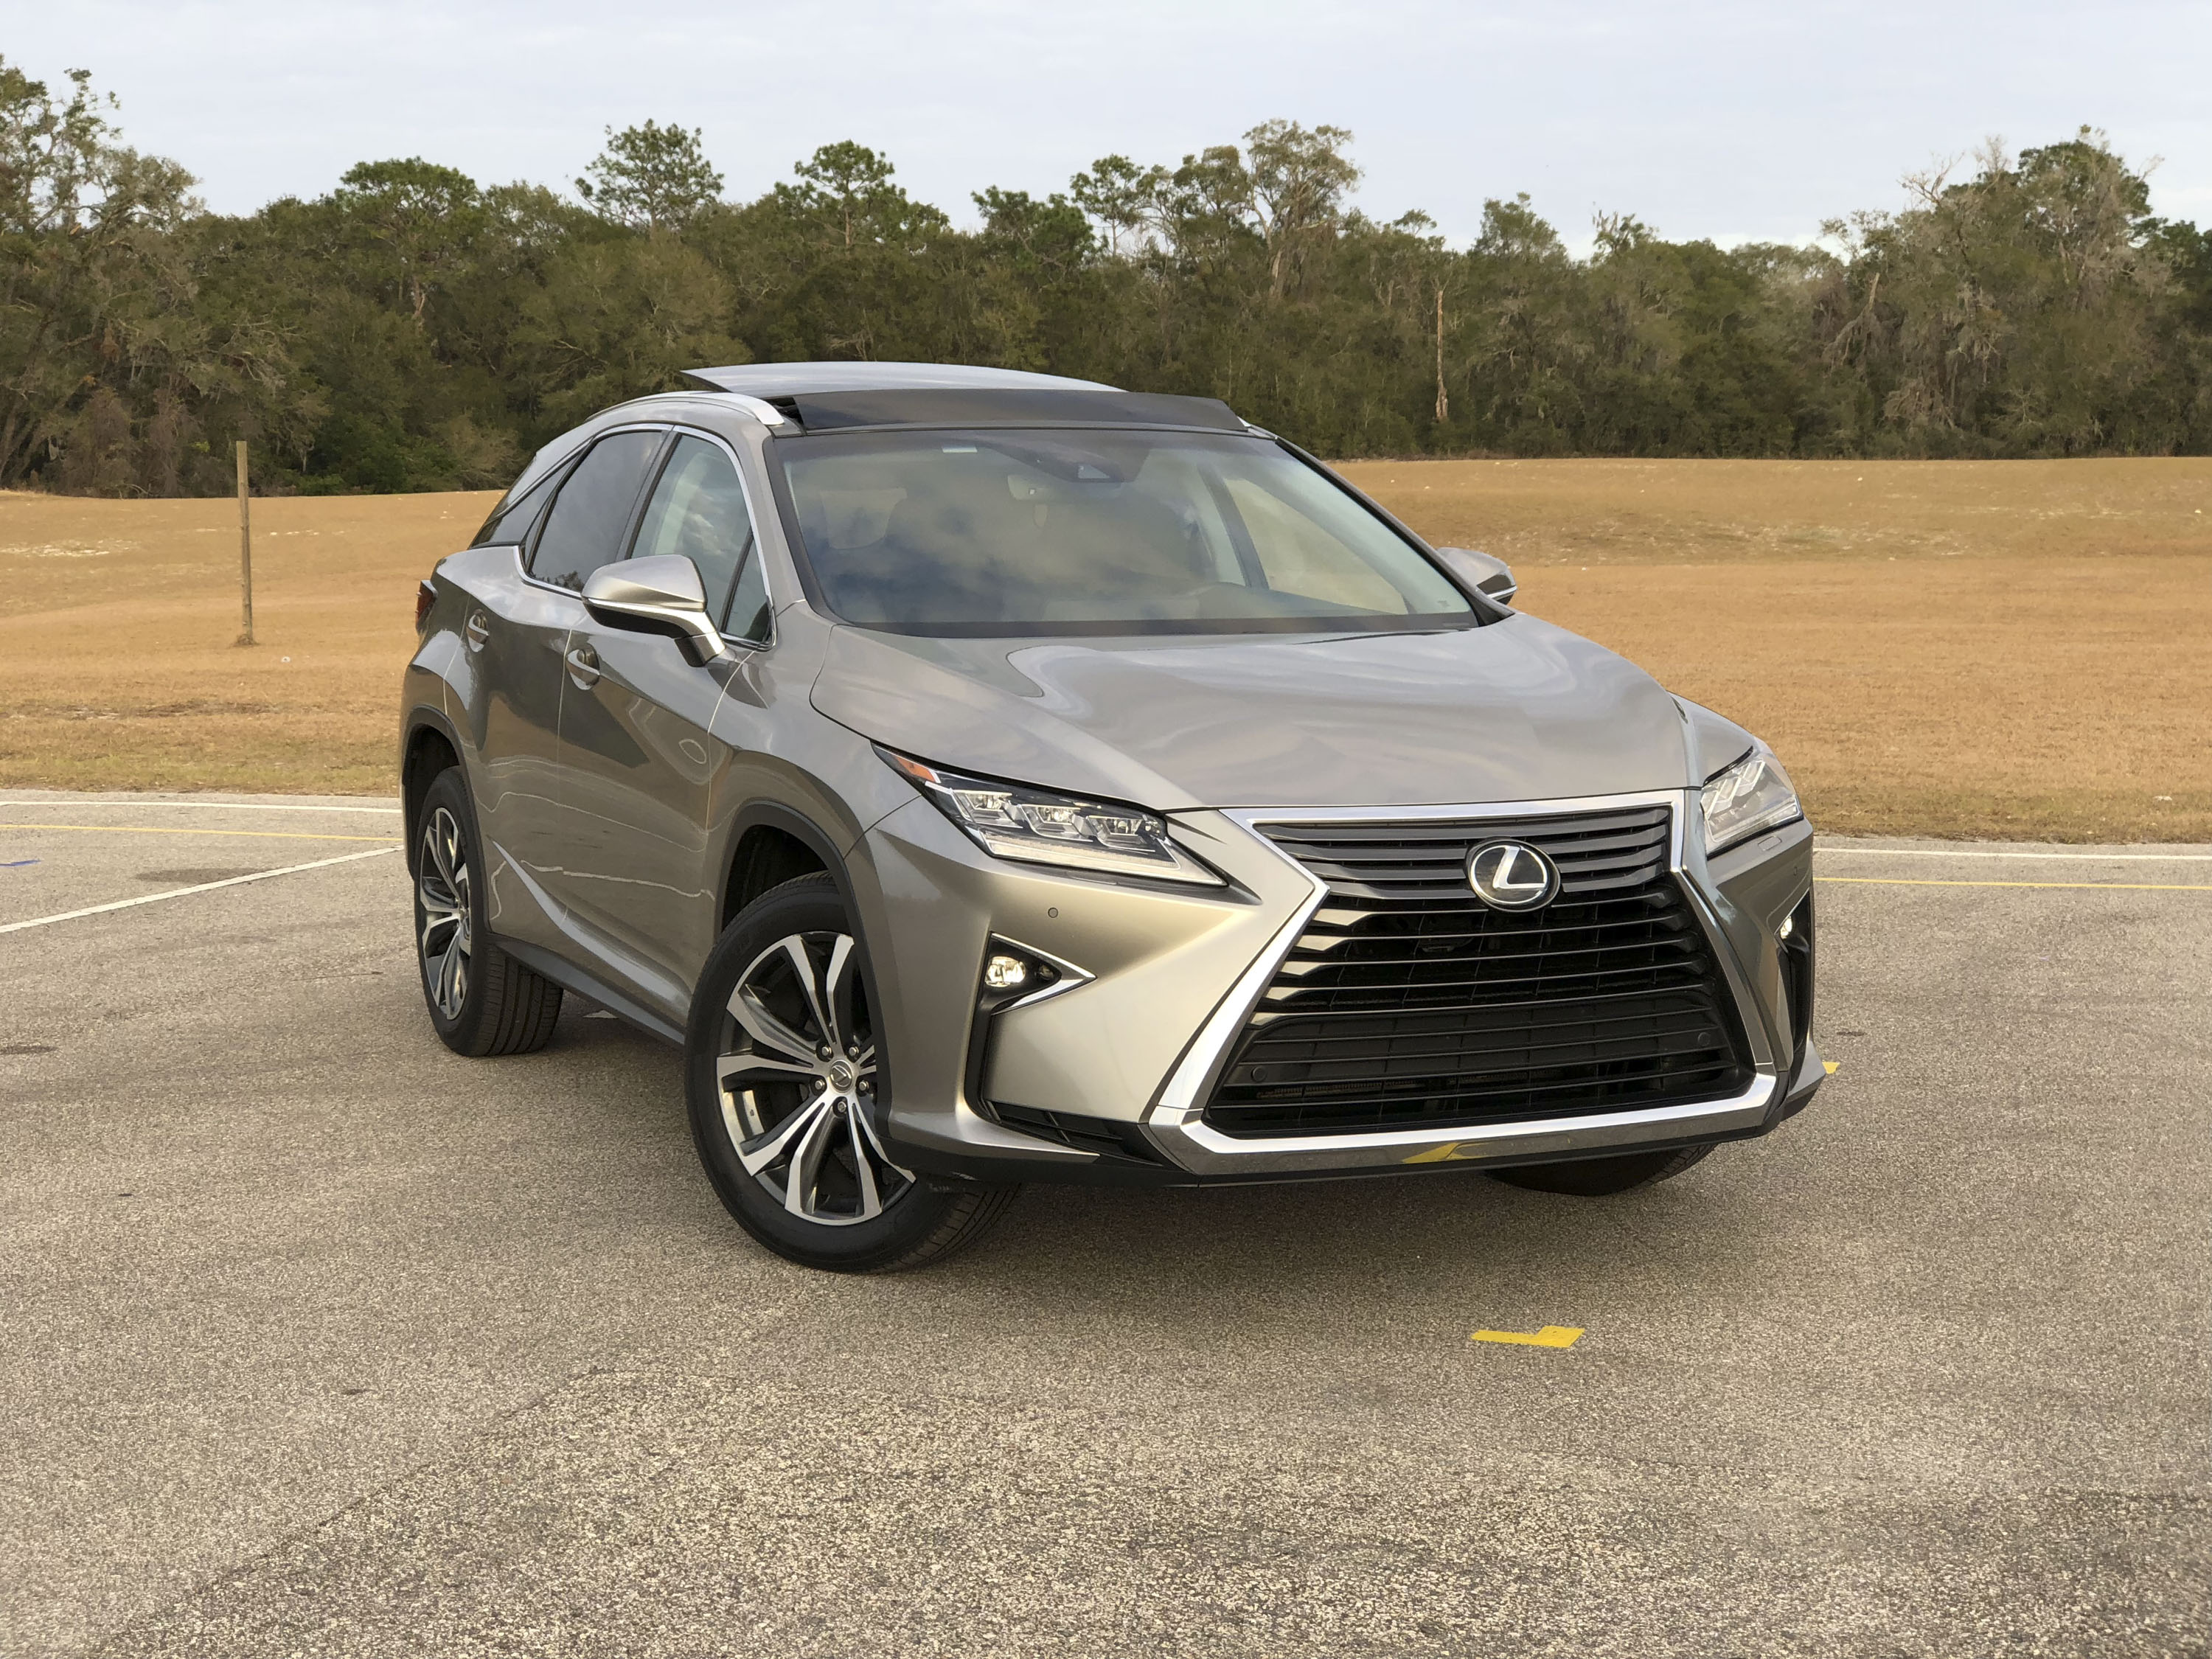 undefined co rx hybrid suv the reports reviewed used tom futuristic by full on scanlan drive uk lexus